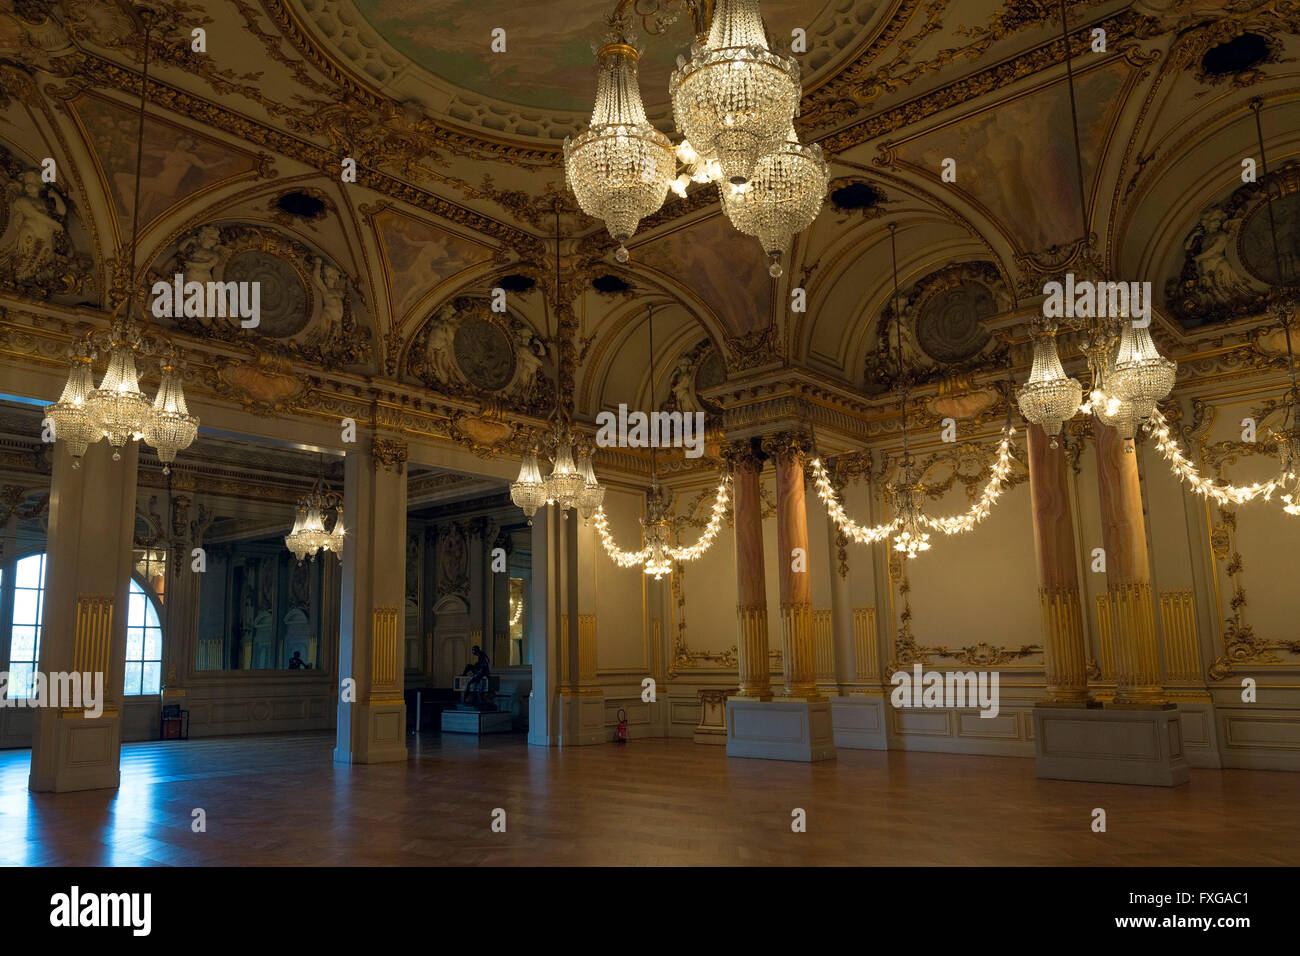 Salle des Fetes, Festival Hall, Musee D'Orsay, Paris, France, Europe - Stock Image